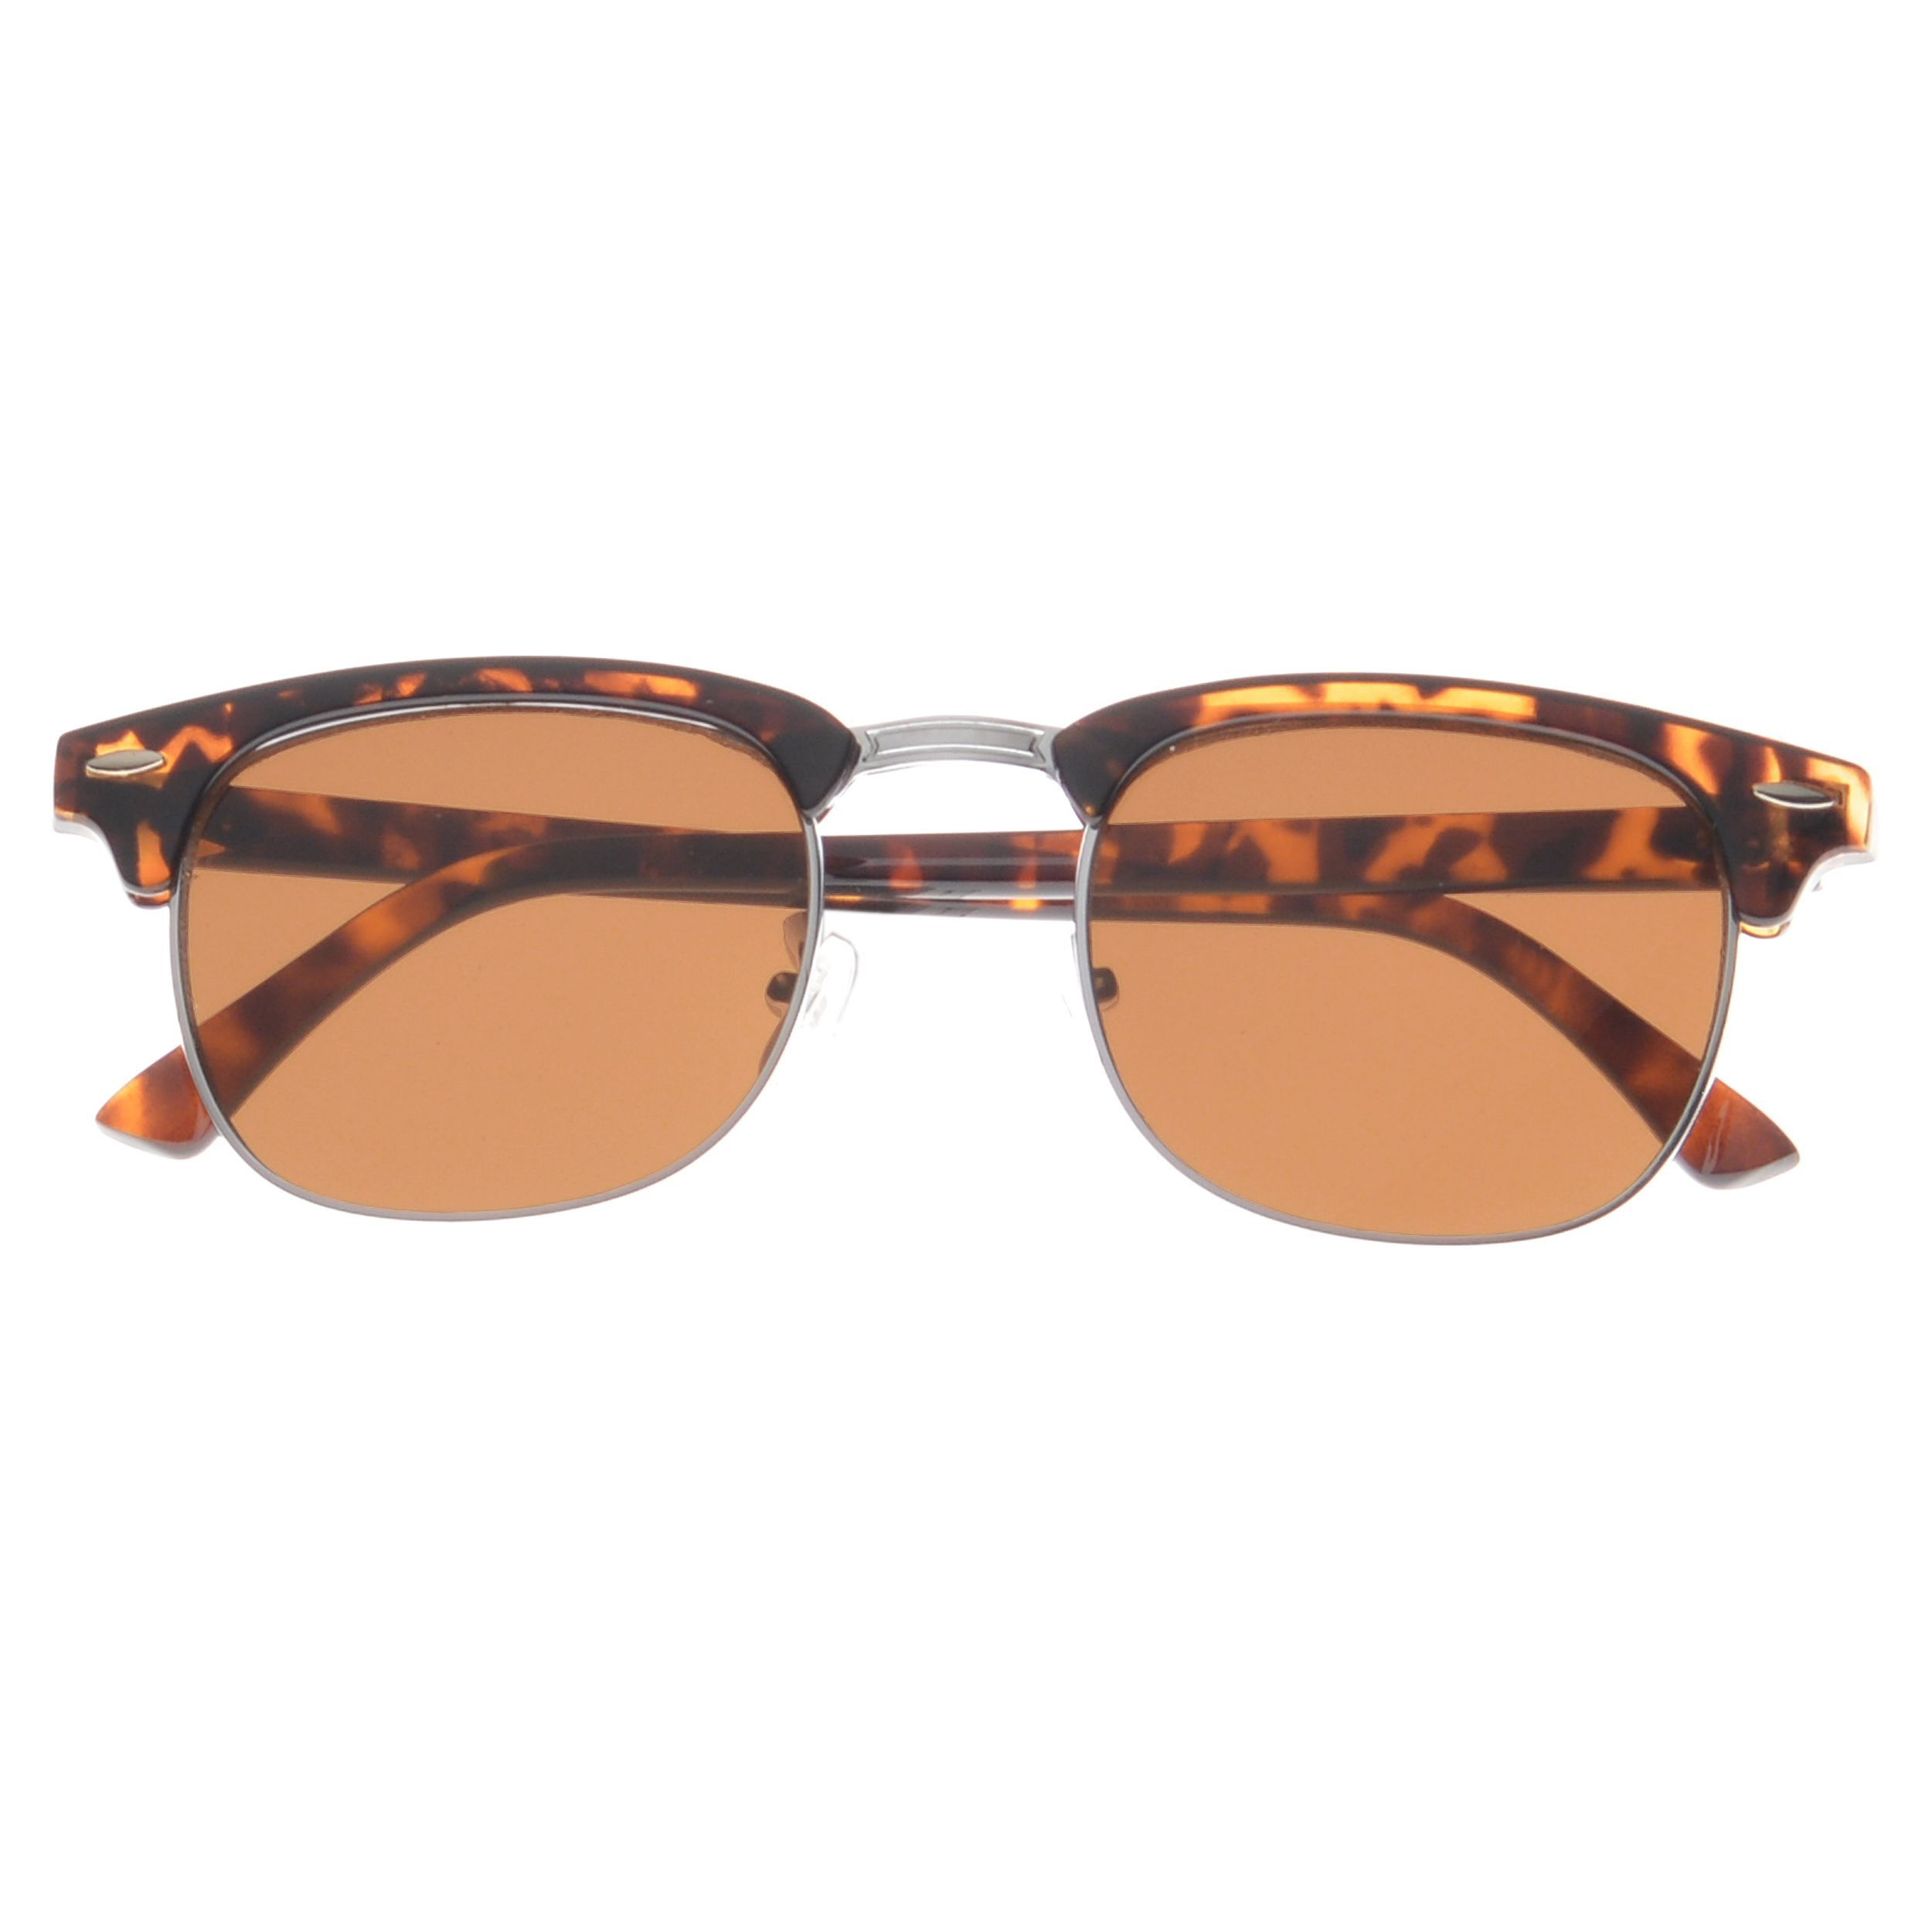 Epic Eyewear Soho Clubmaster Fashion Sunglasses